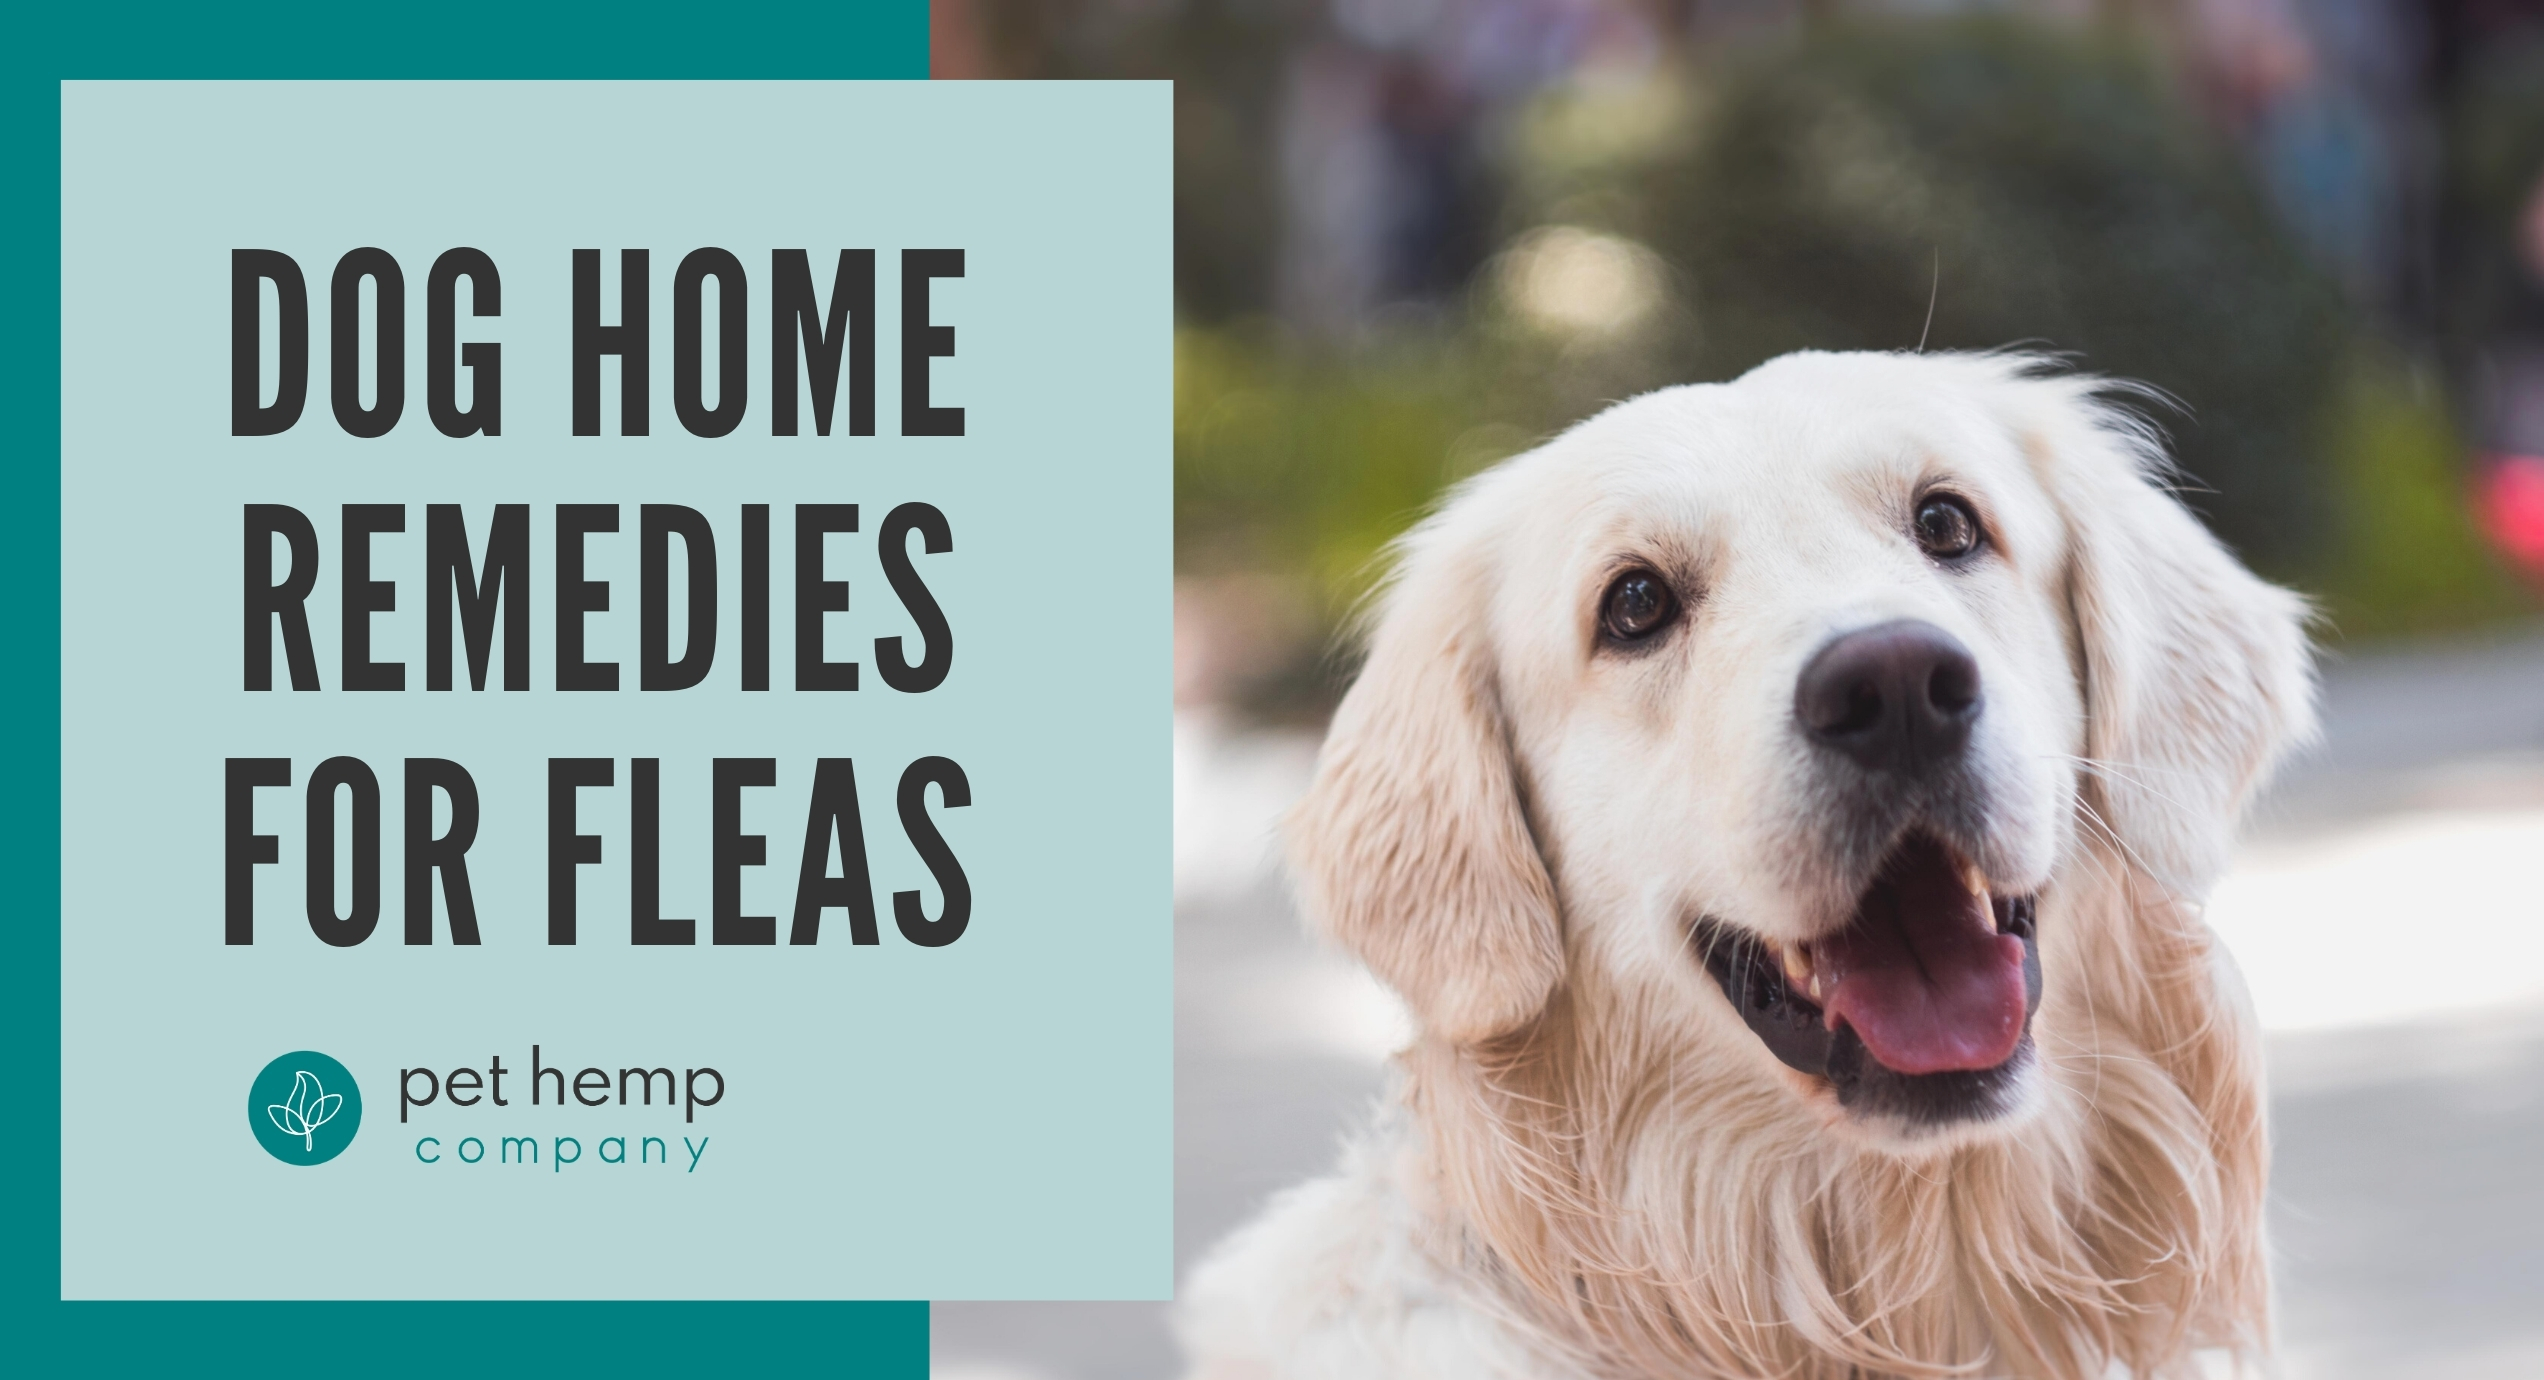 dog home remedies for fleas